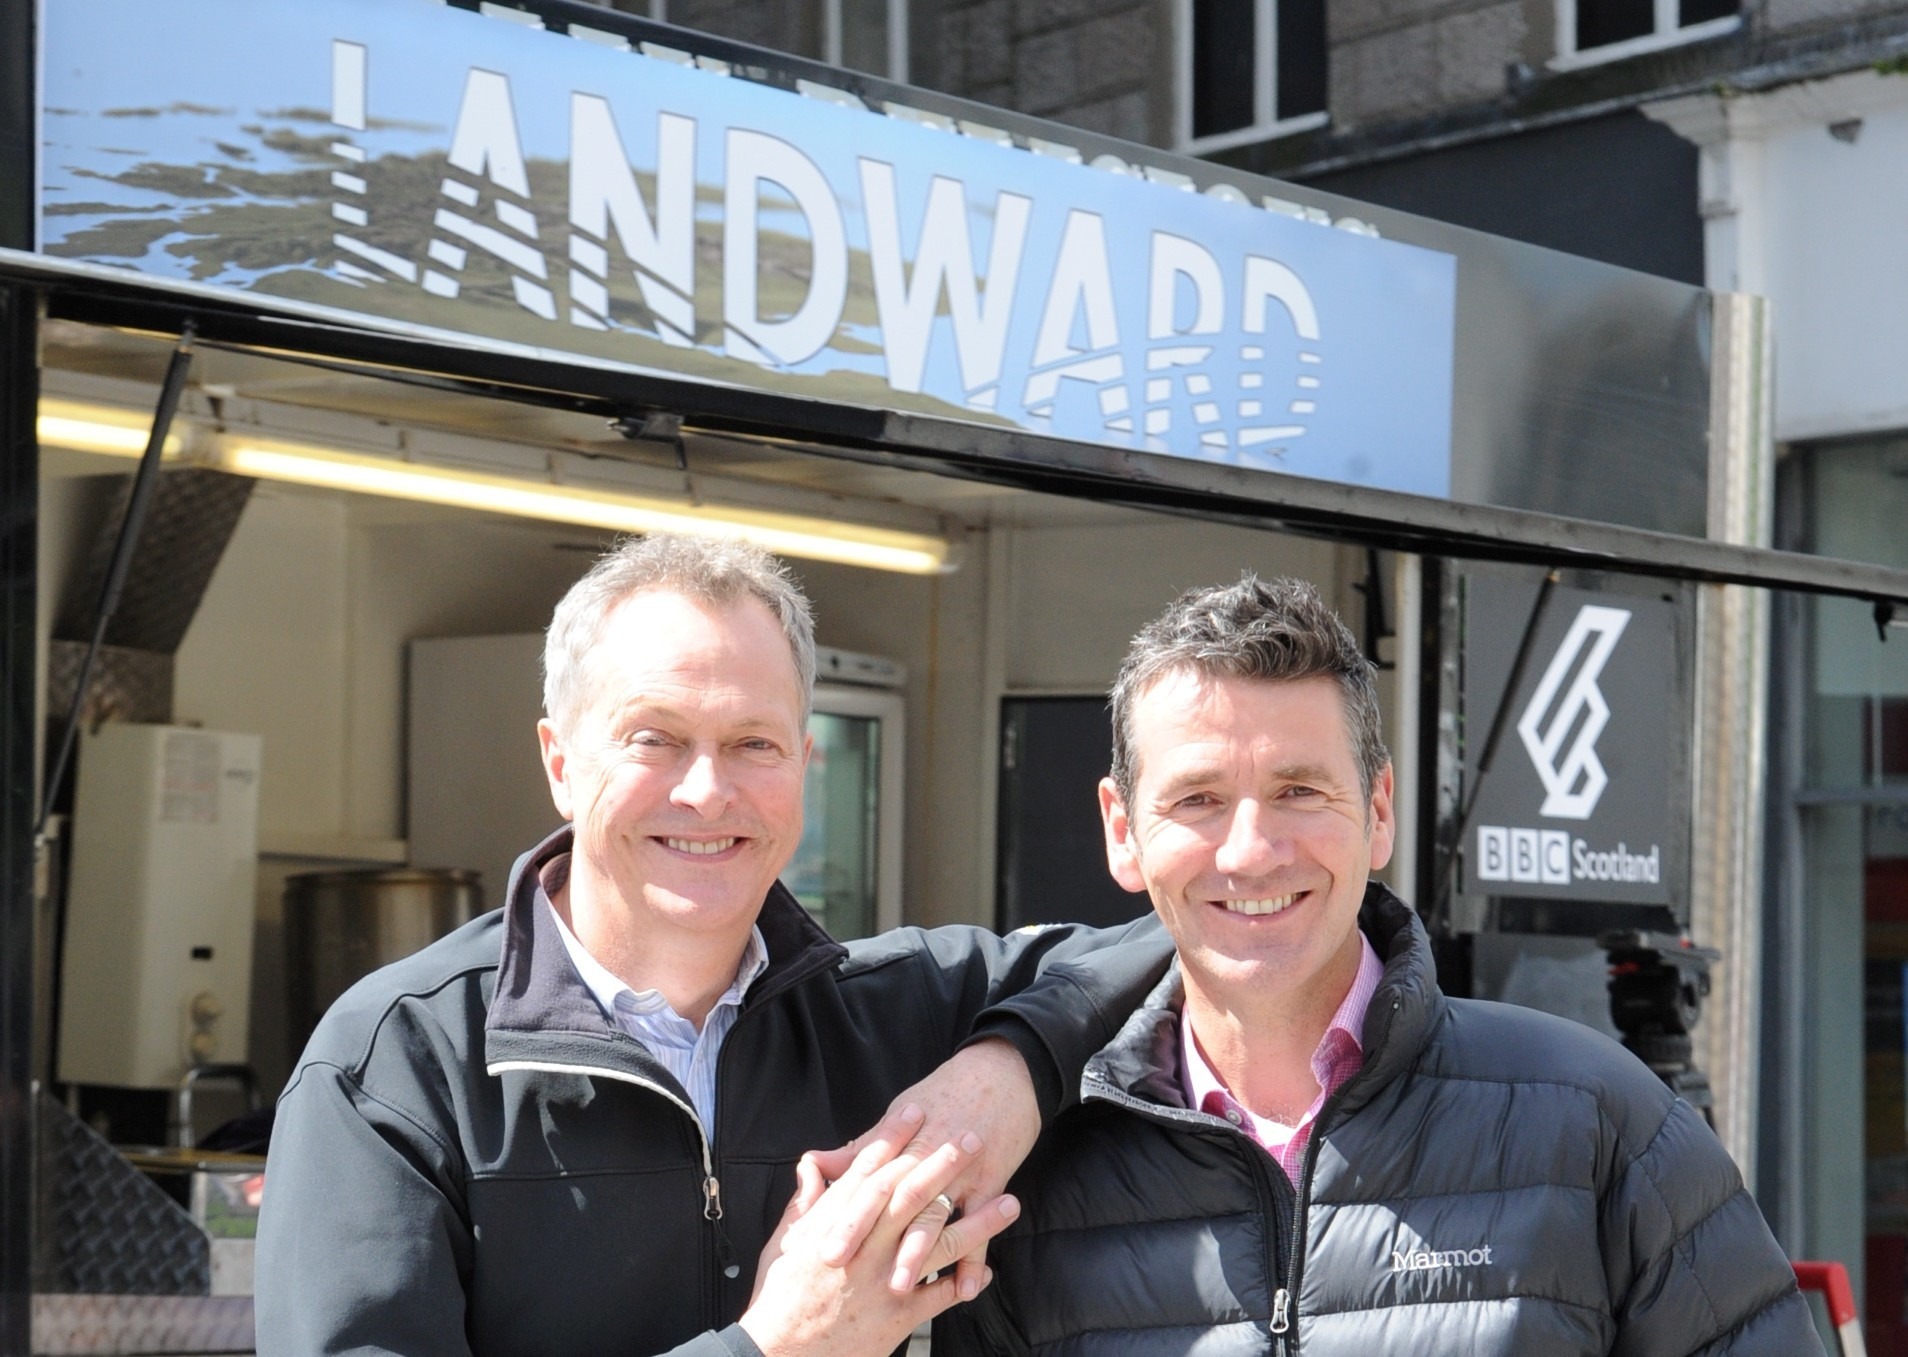 From left, Nick Nairn and BBC broadcaster and Deacon Blue drummer Dougie Vipond.